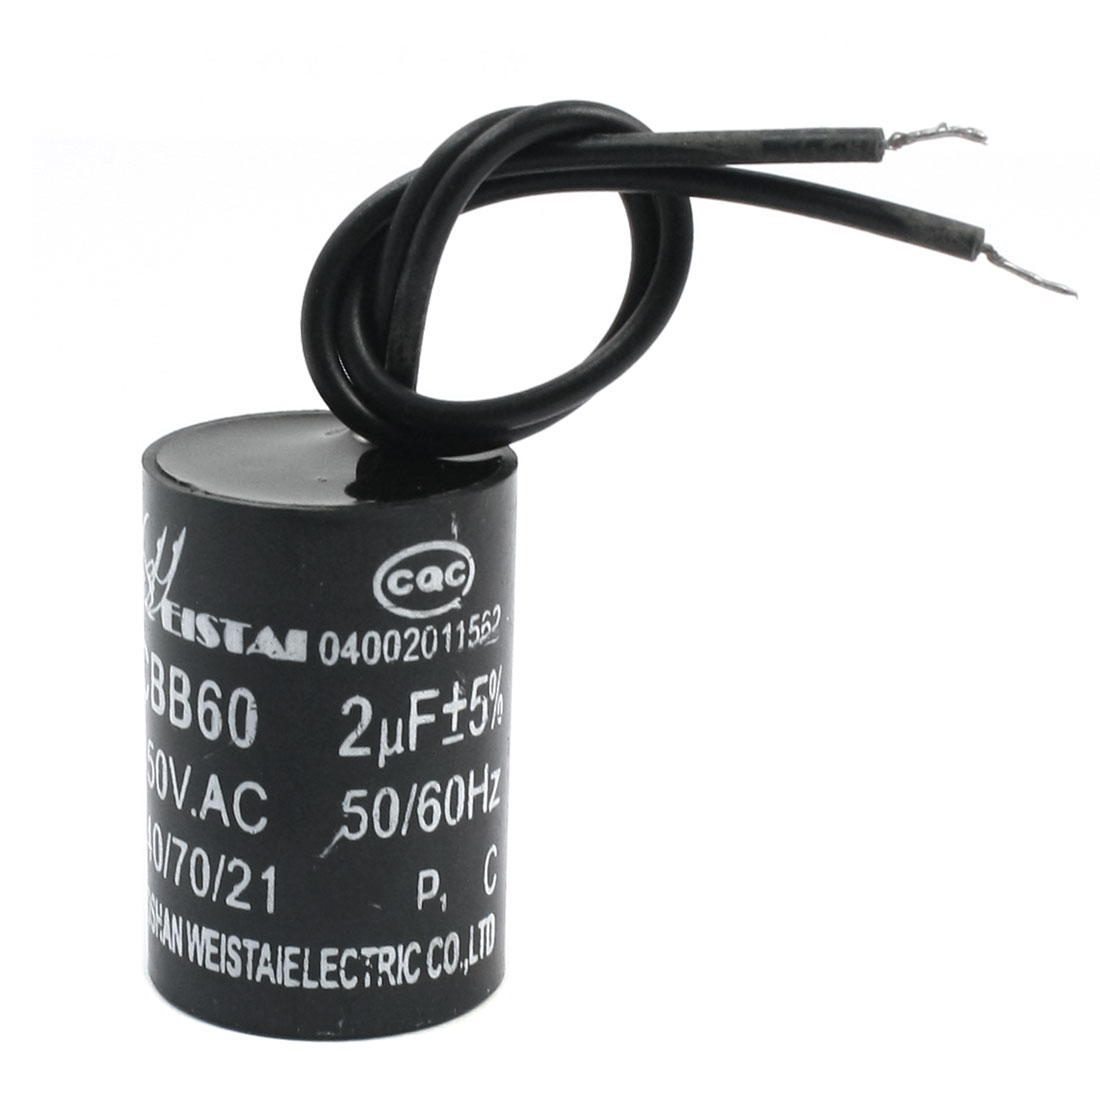 CBB60 2uF 5% Wired Capacitance Motor Star-up Capacitor AC450V